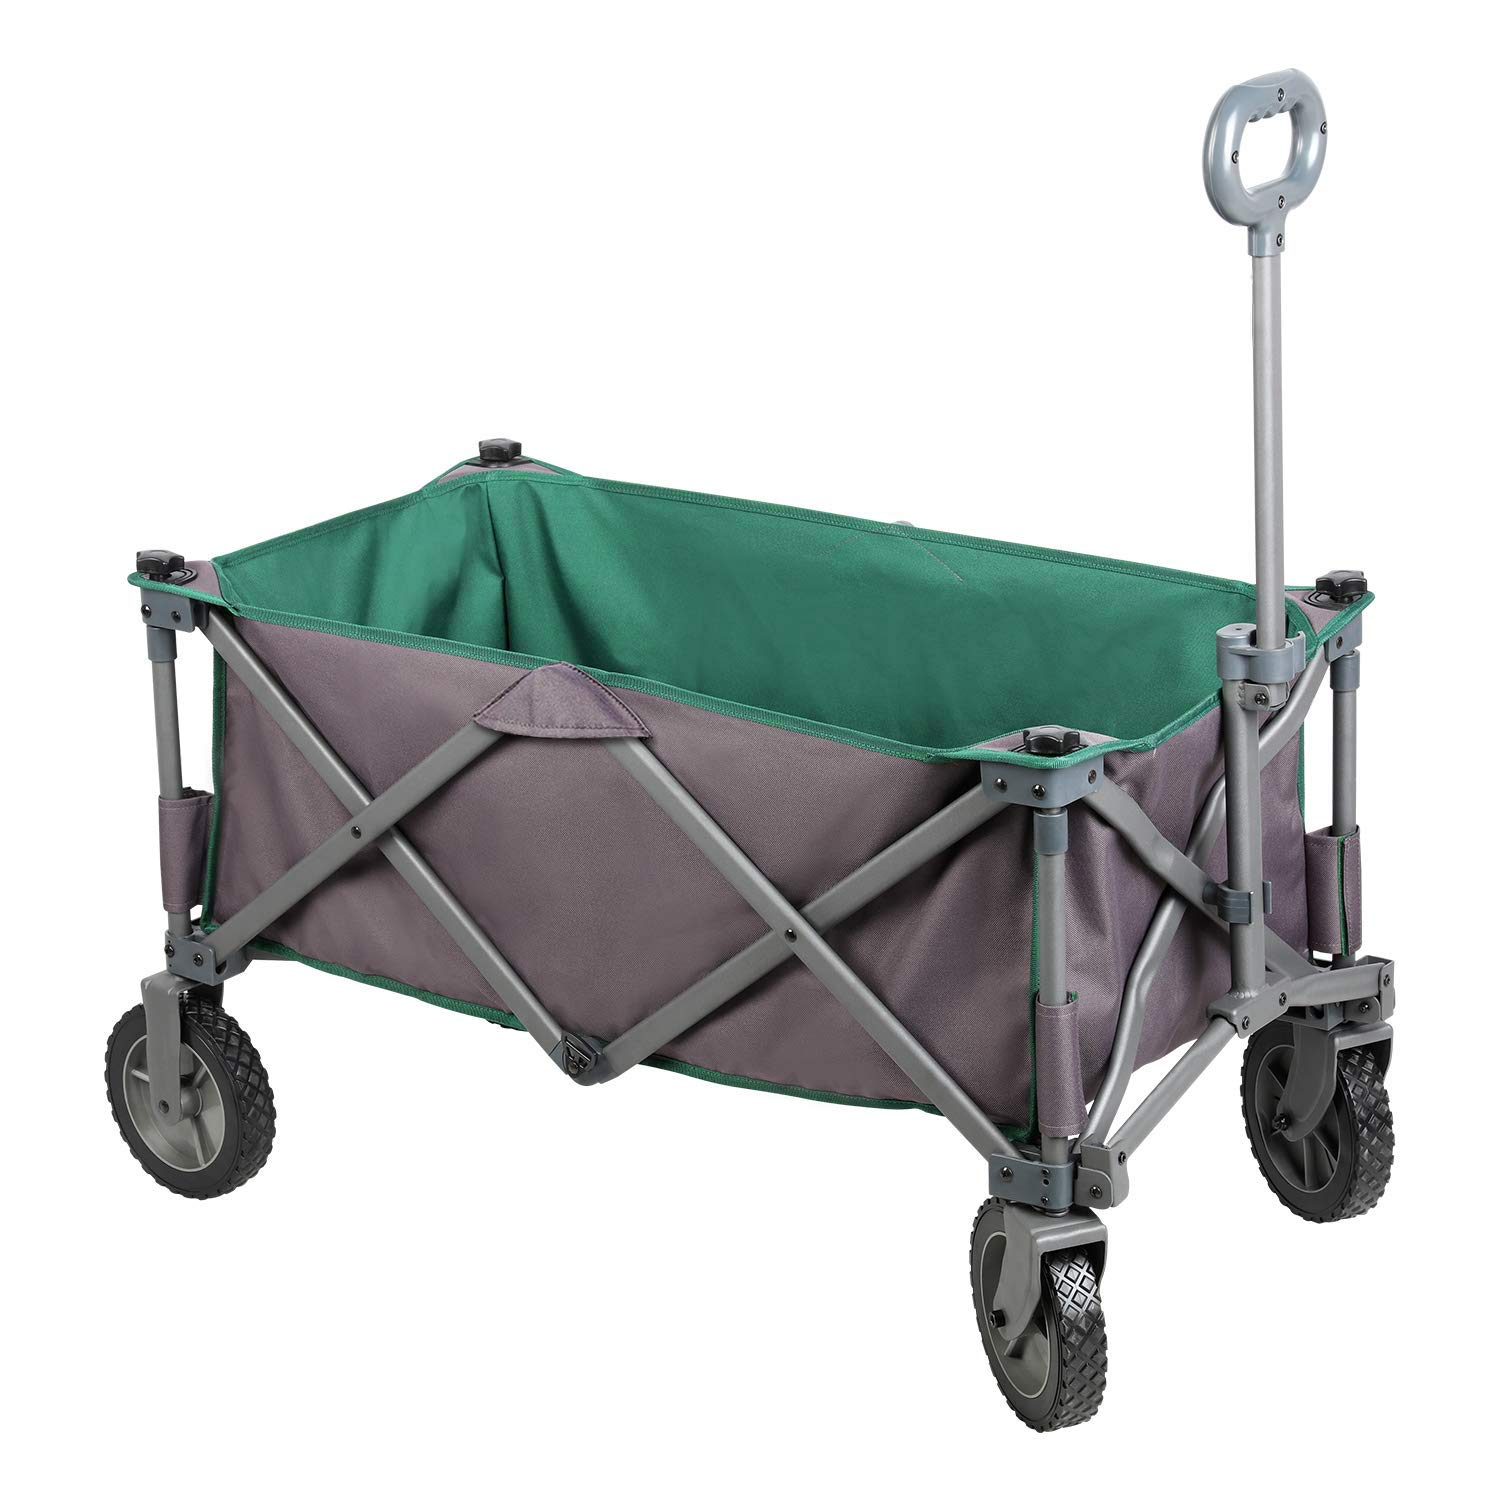 PORTAL Collapsible Folding Utility Wagon Quad Compact Outdoor Garden Camping Cart with Removable Fabric, Support up to 225 lbs (Grey/Green)